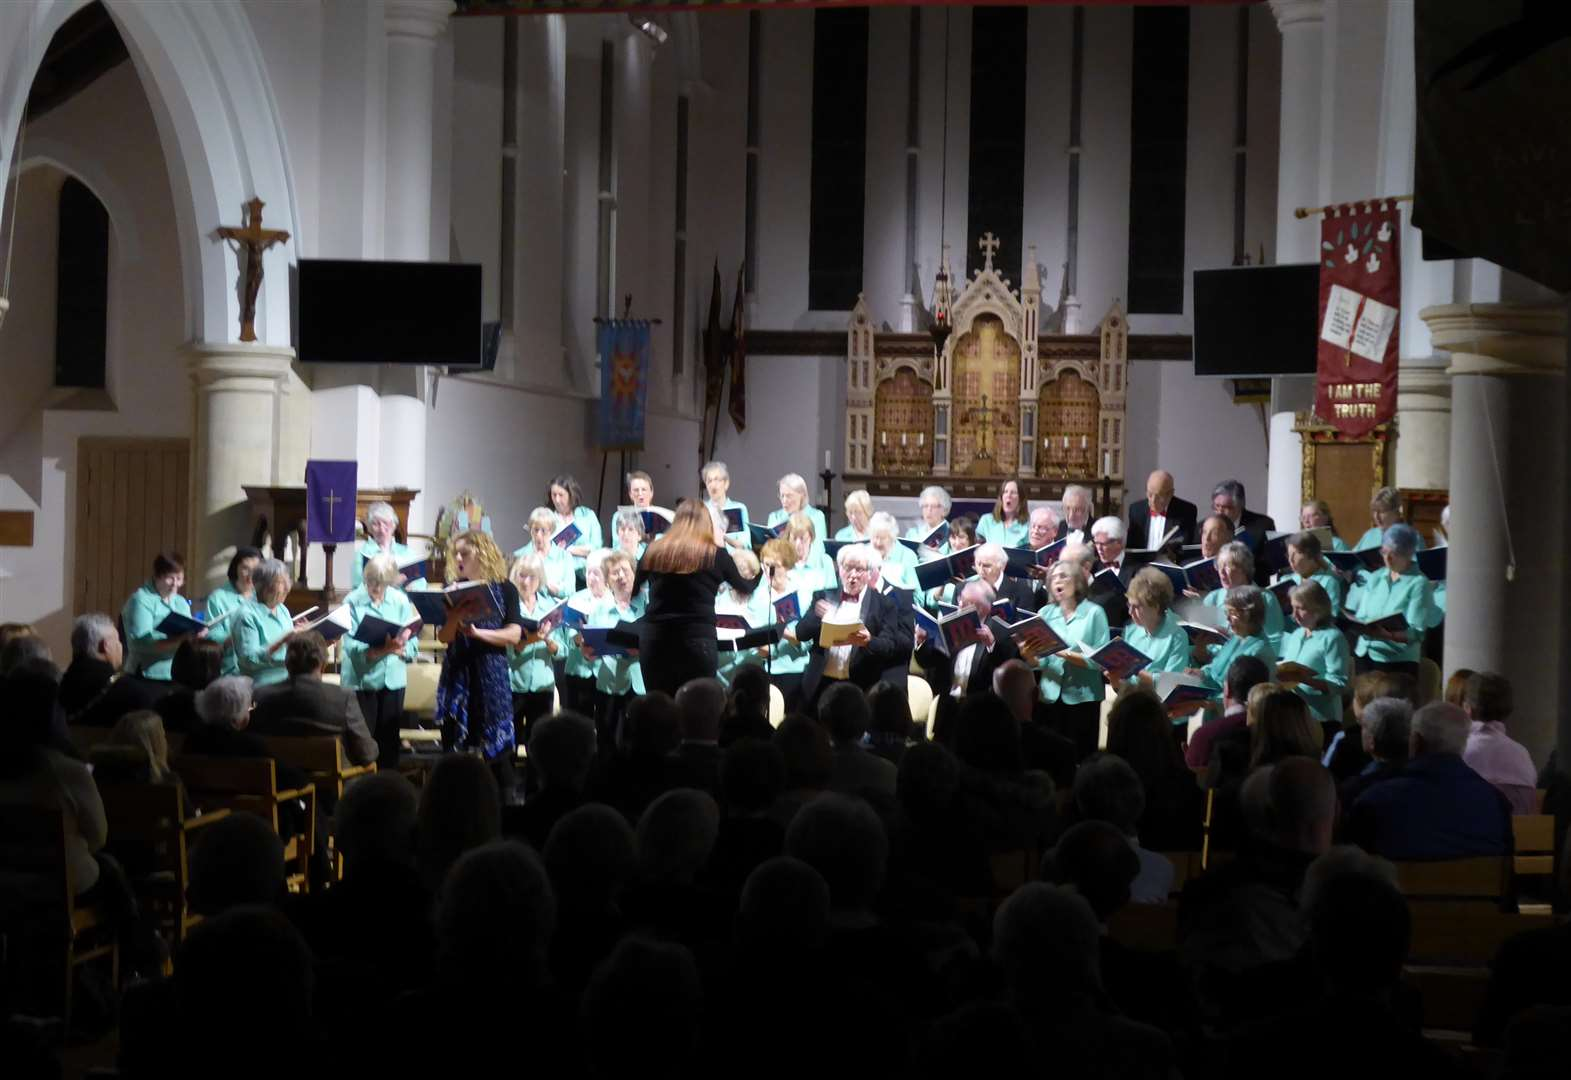 CONCERT REVIEW: New beginnings for South Holland Singers under new musical director